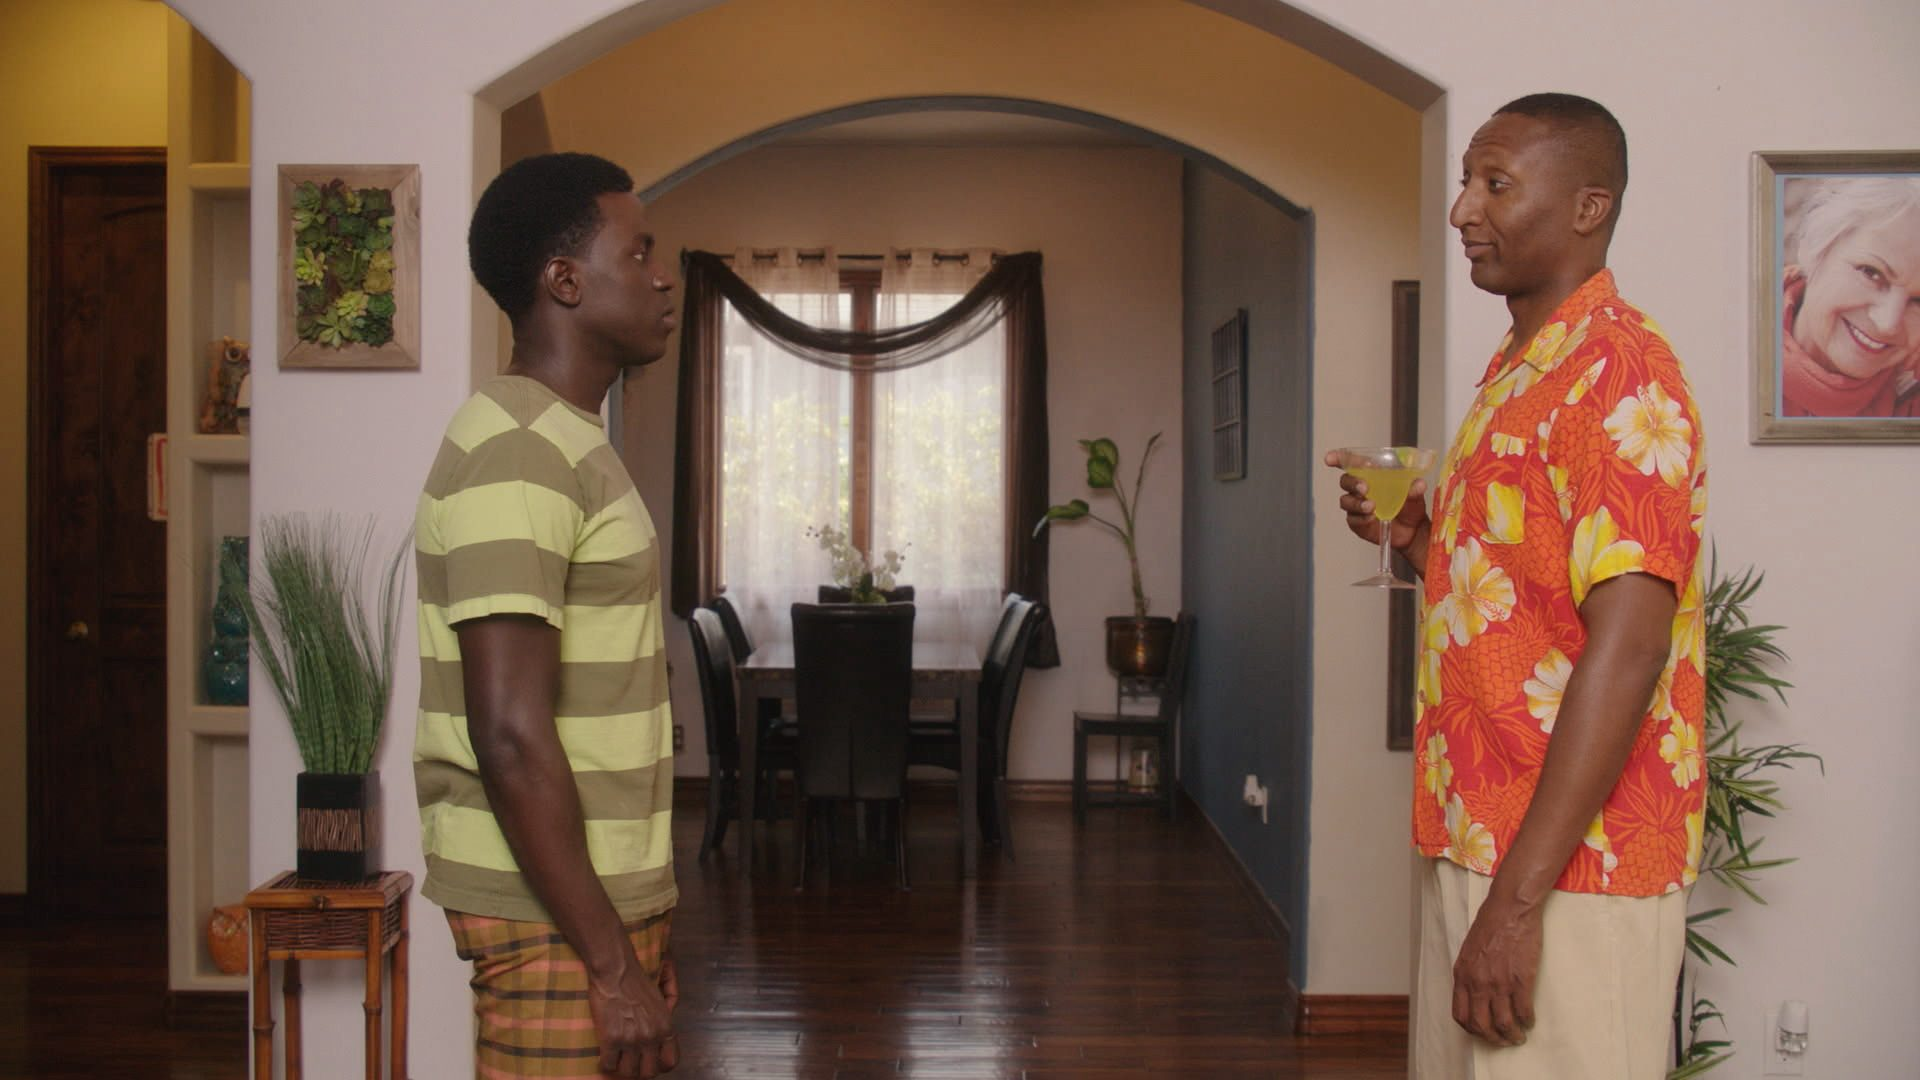 Charlie (Wiley B. Oscar) Refuses To Let Darrell (Darrell Lake) Stay, Sugar Mama, The Incredible Life Of Darrell, Stage 13 Original, stage13network